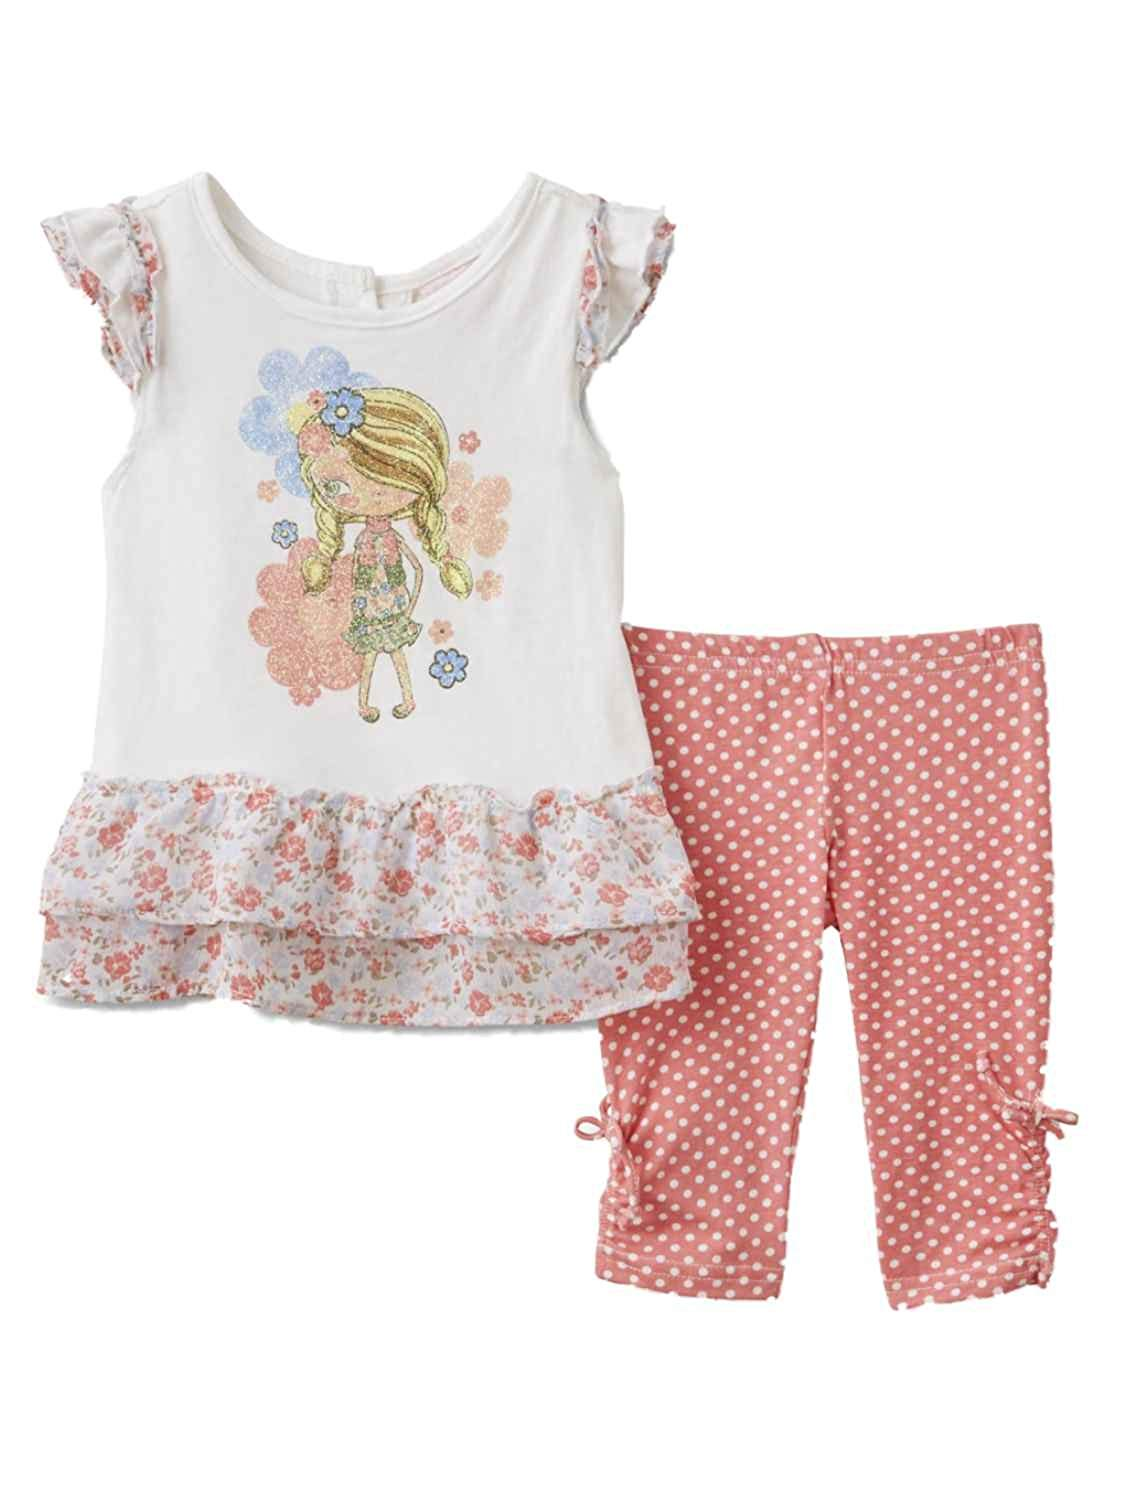 33faeb02aca9 Get Quotations · Nannette Infant Girls Floral Baby Outfit Fancy Girl Shirt    Polka Dot Leggings Set